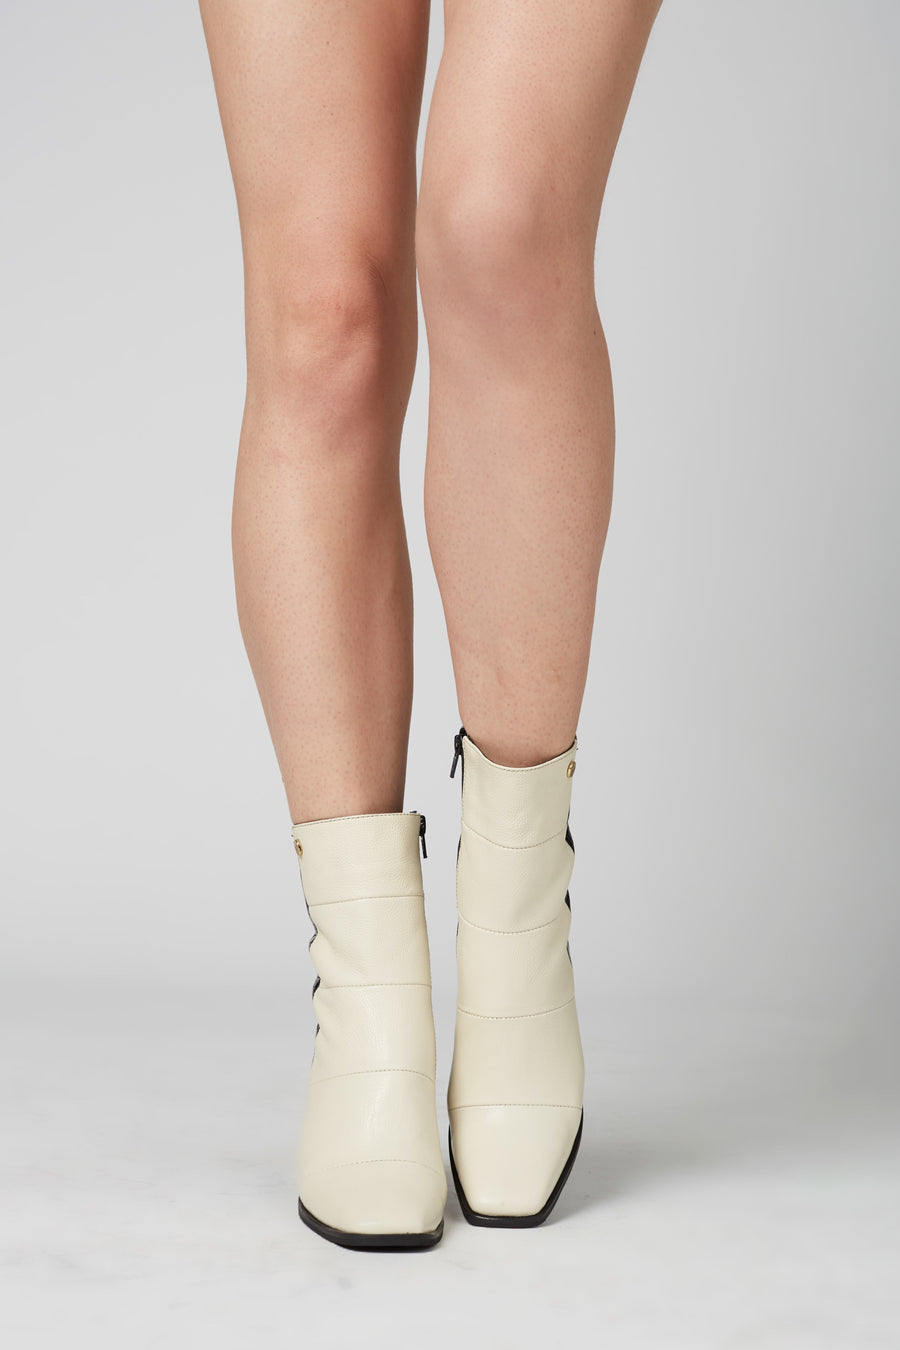 Avalon booties with higher ankles and mid ankles